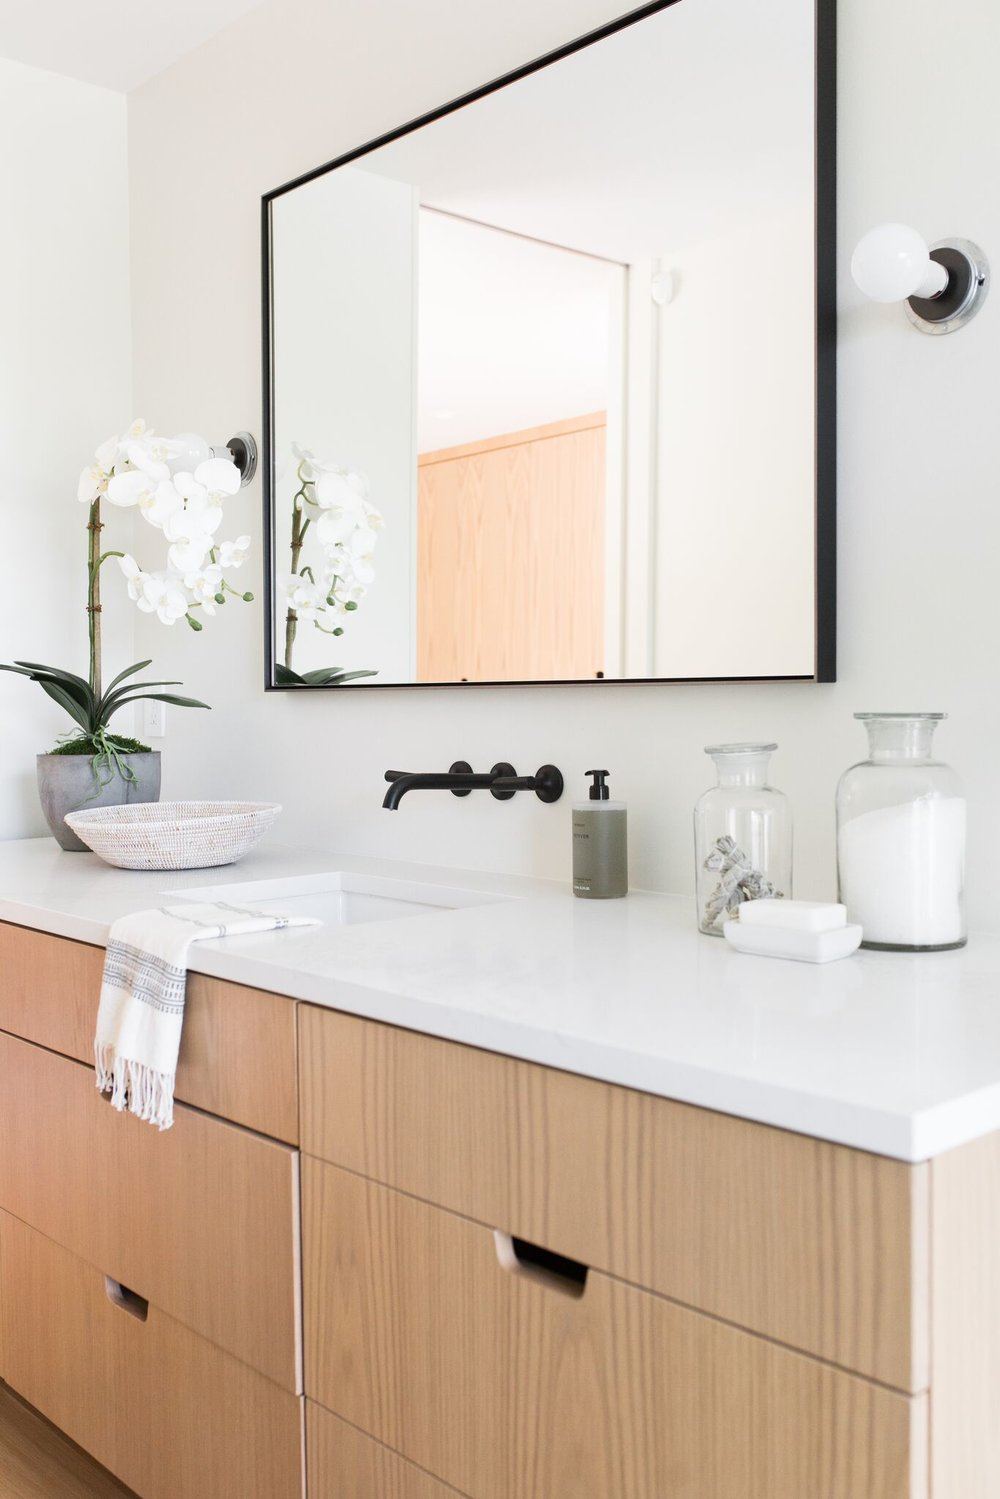 Picture of: Wall Mounted Faucet Bathroom Height Image Of Bathroom And Closet